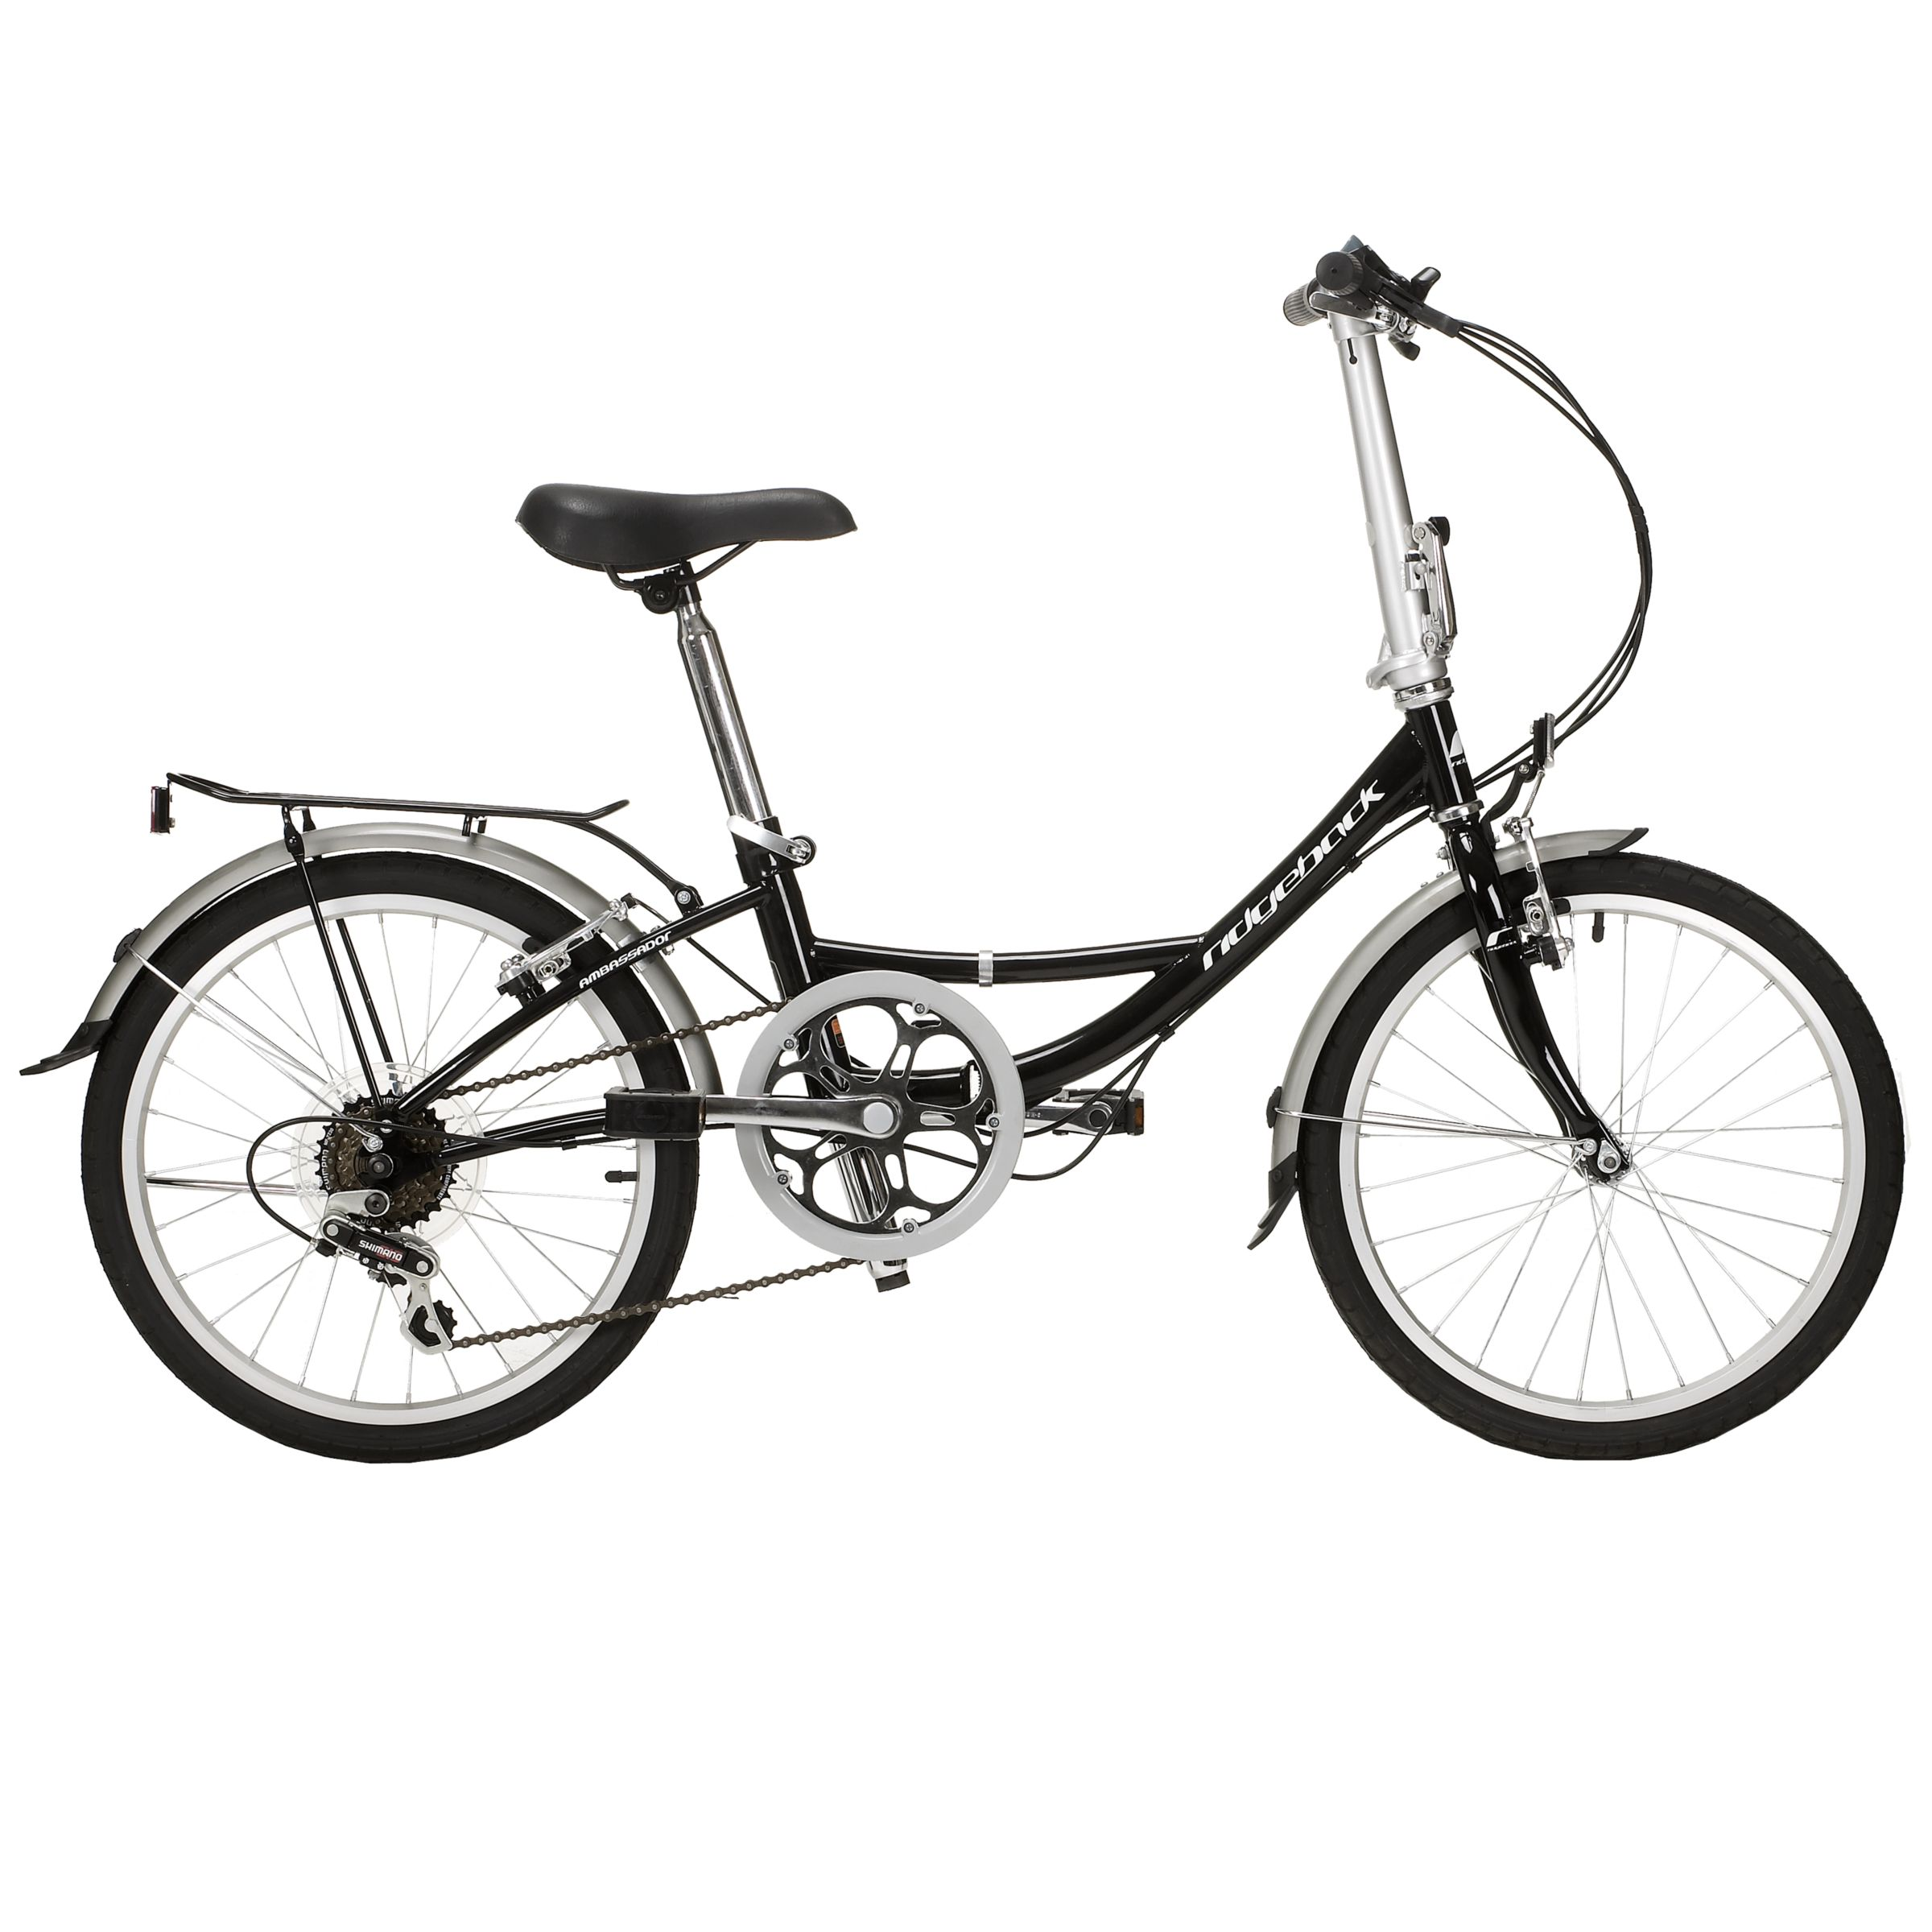 Ridgeback Ambassador Folding Bike, Unisex, Black